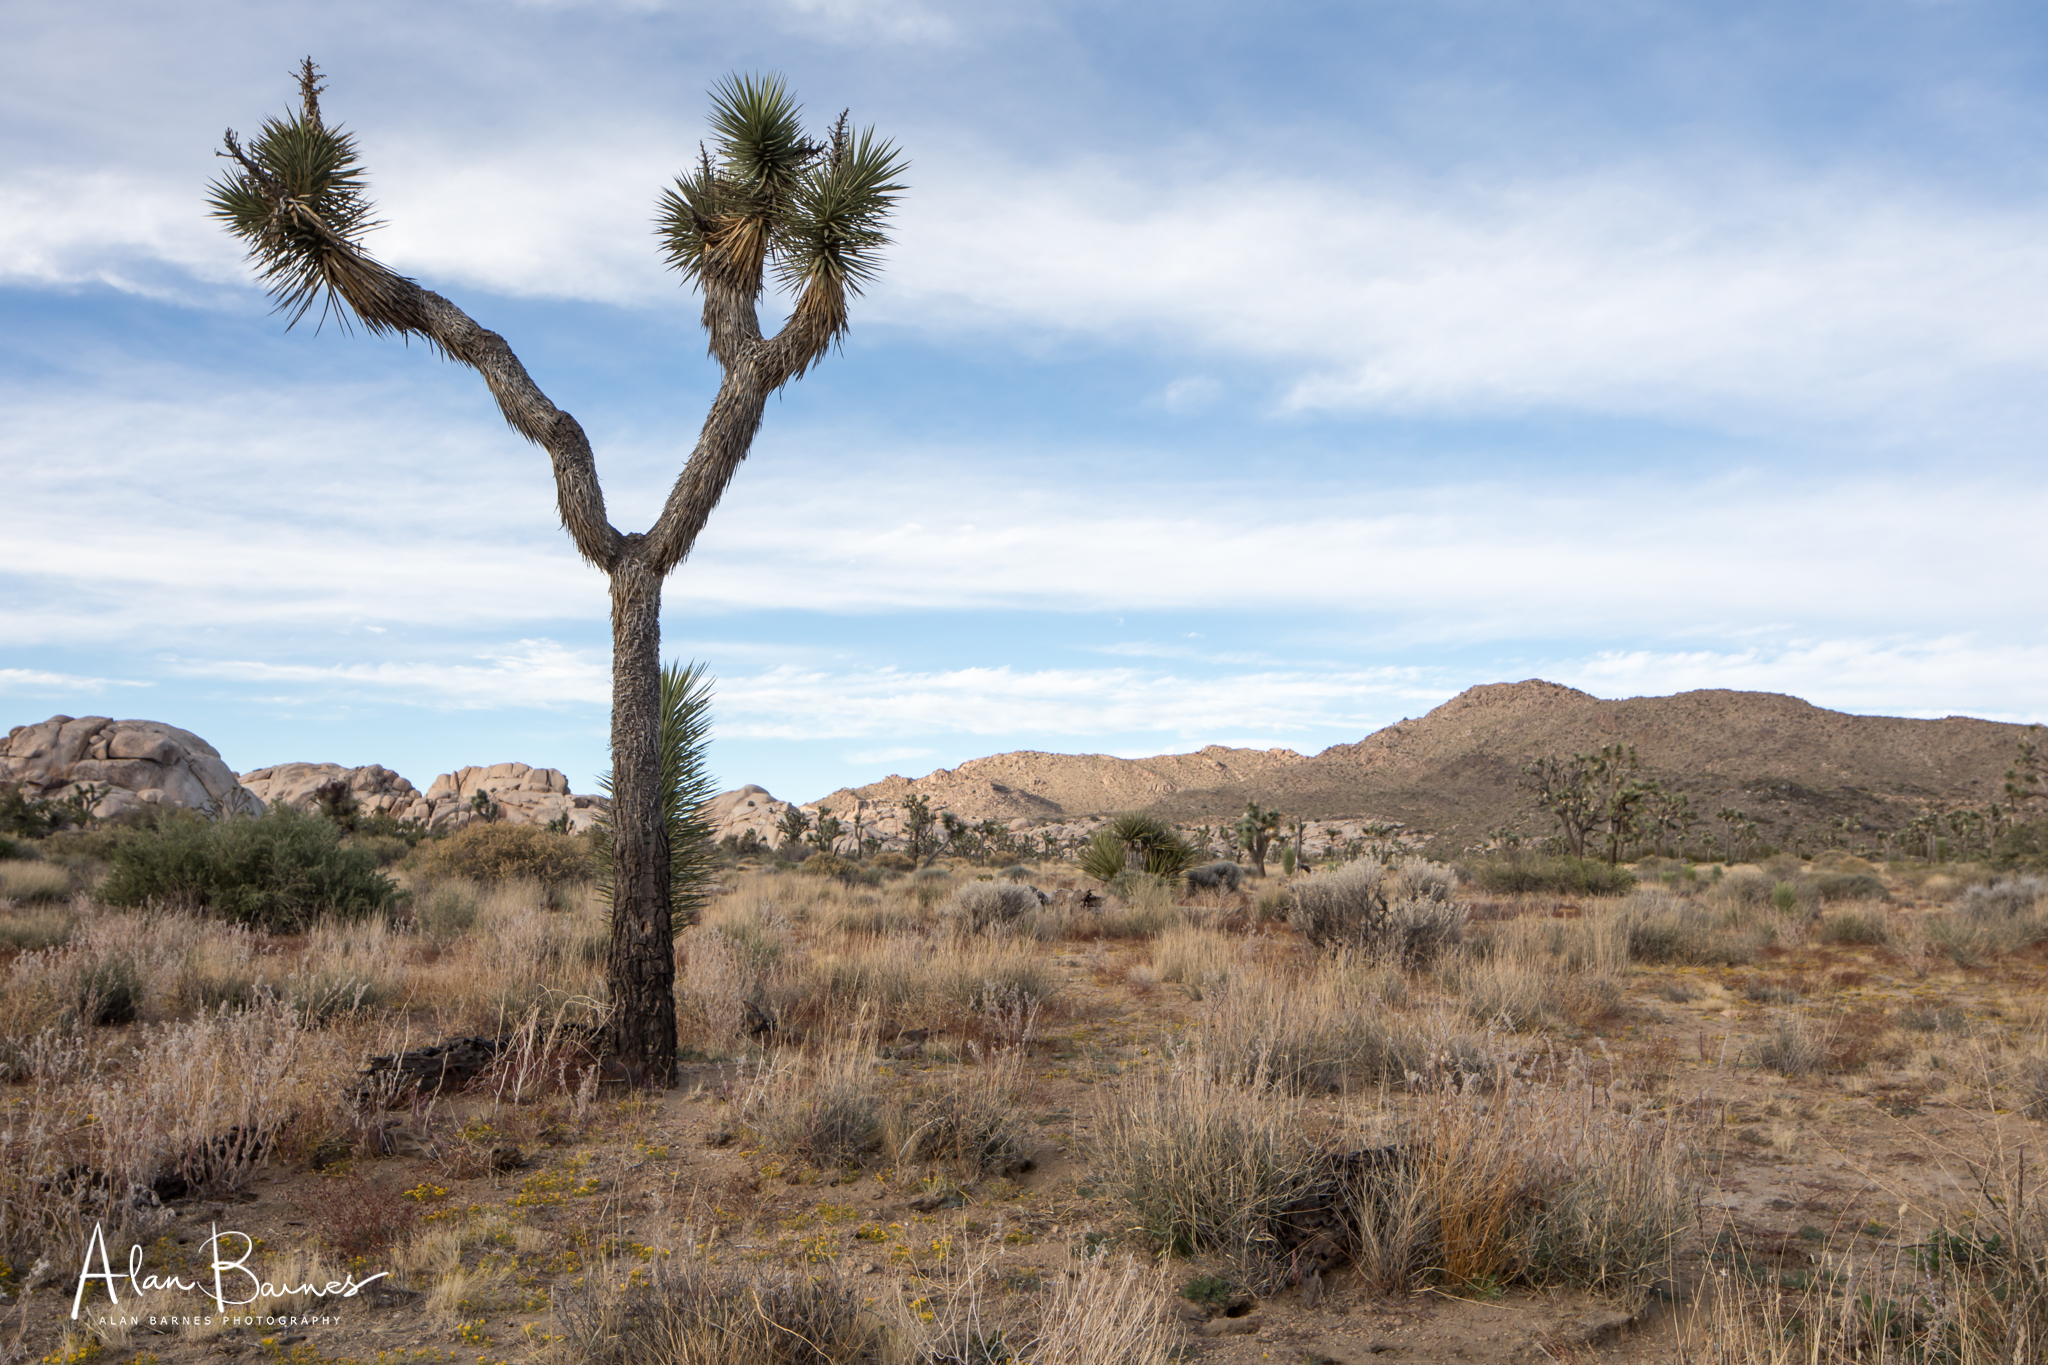 Firstly, the Joshua tree (Yucca brevifolia), is not a tree. Nor a cactus. It's a member of the agave family. Secondly the album cover for U2's album of the same name was not taken at Joshua Tree Park, but 200 miles away near Death Valley. Sadly Dutch music-venue manager Guus Van Hove and his German wife Helena Nuellett, died in Joshua Tree Park from heat exhaustion - looking for the album cover tree.